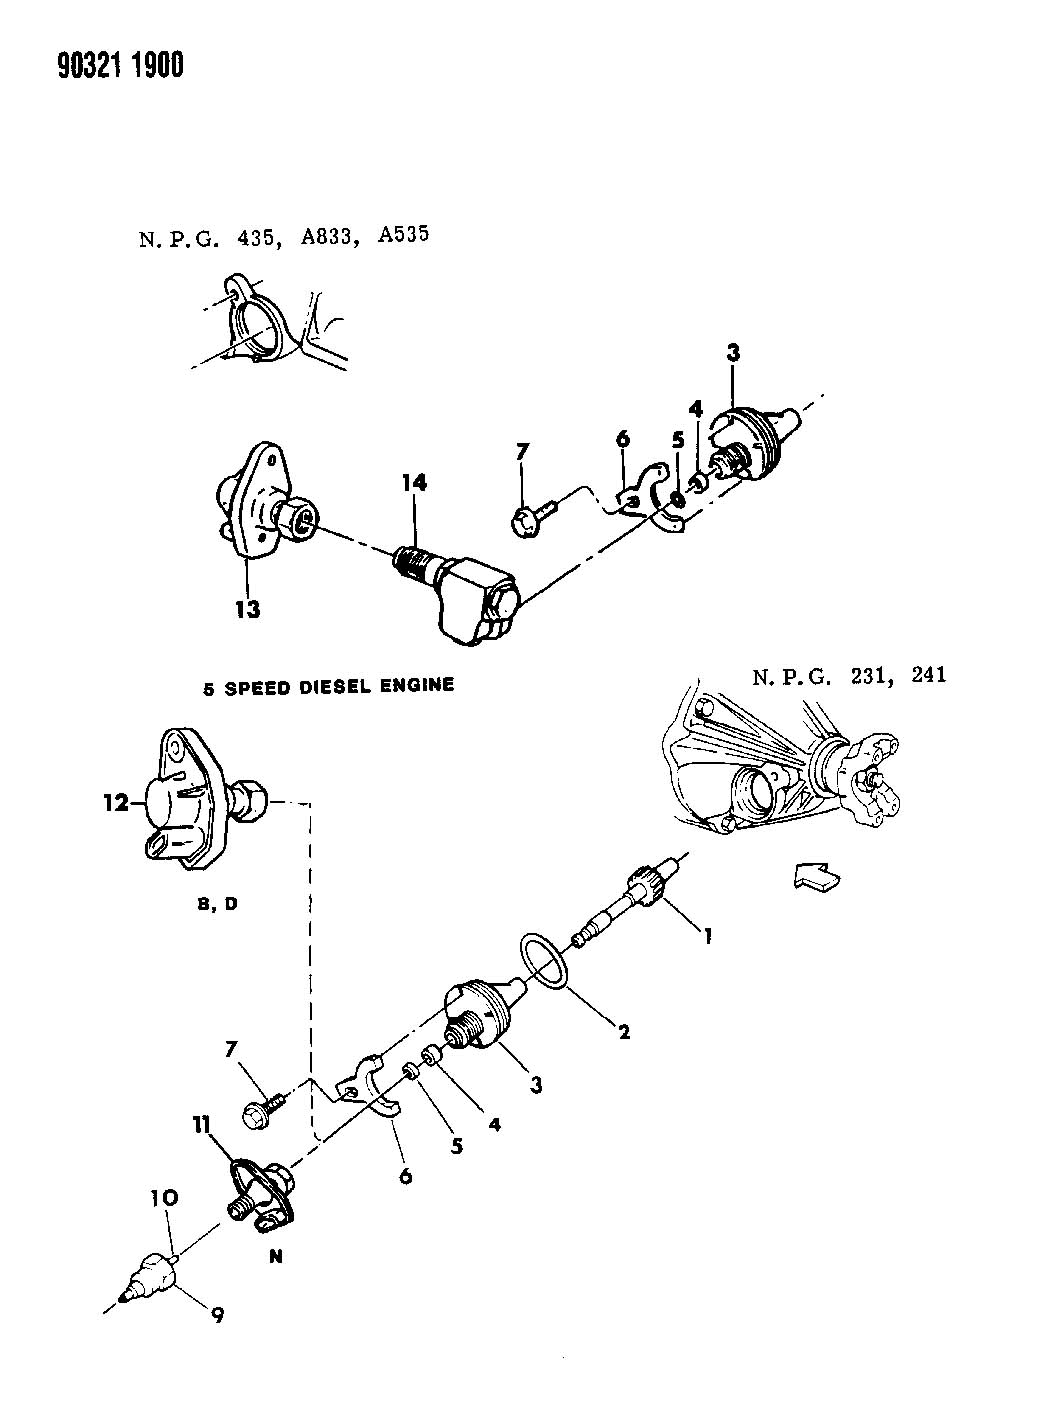 CABLE, SPEEDOMETER WITH PINION AND RETAINER B-N-D (D5,6,7